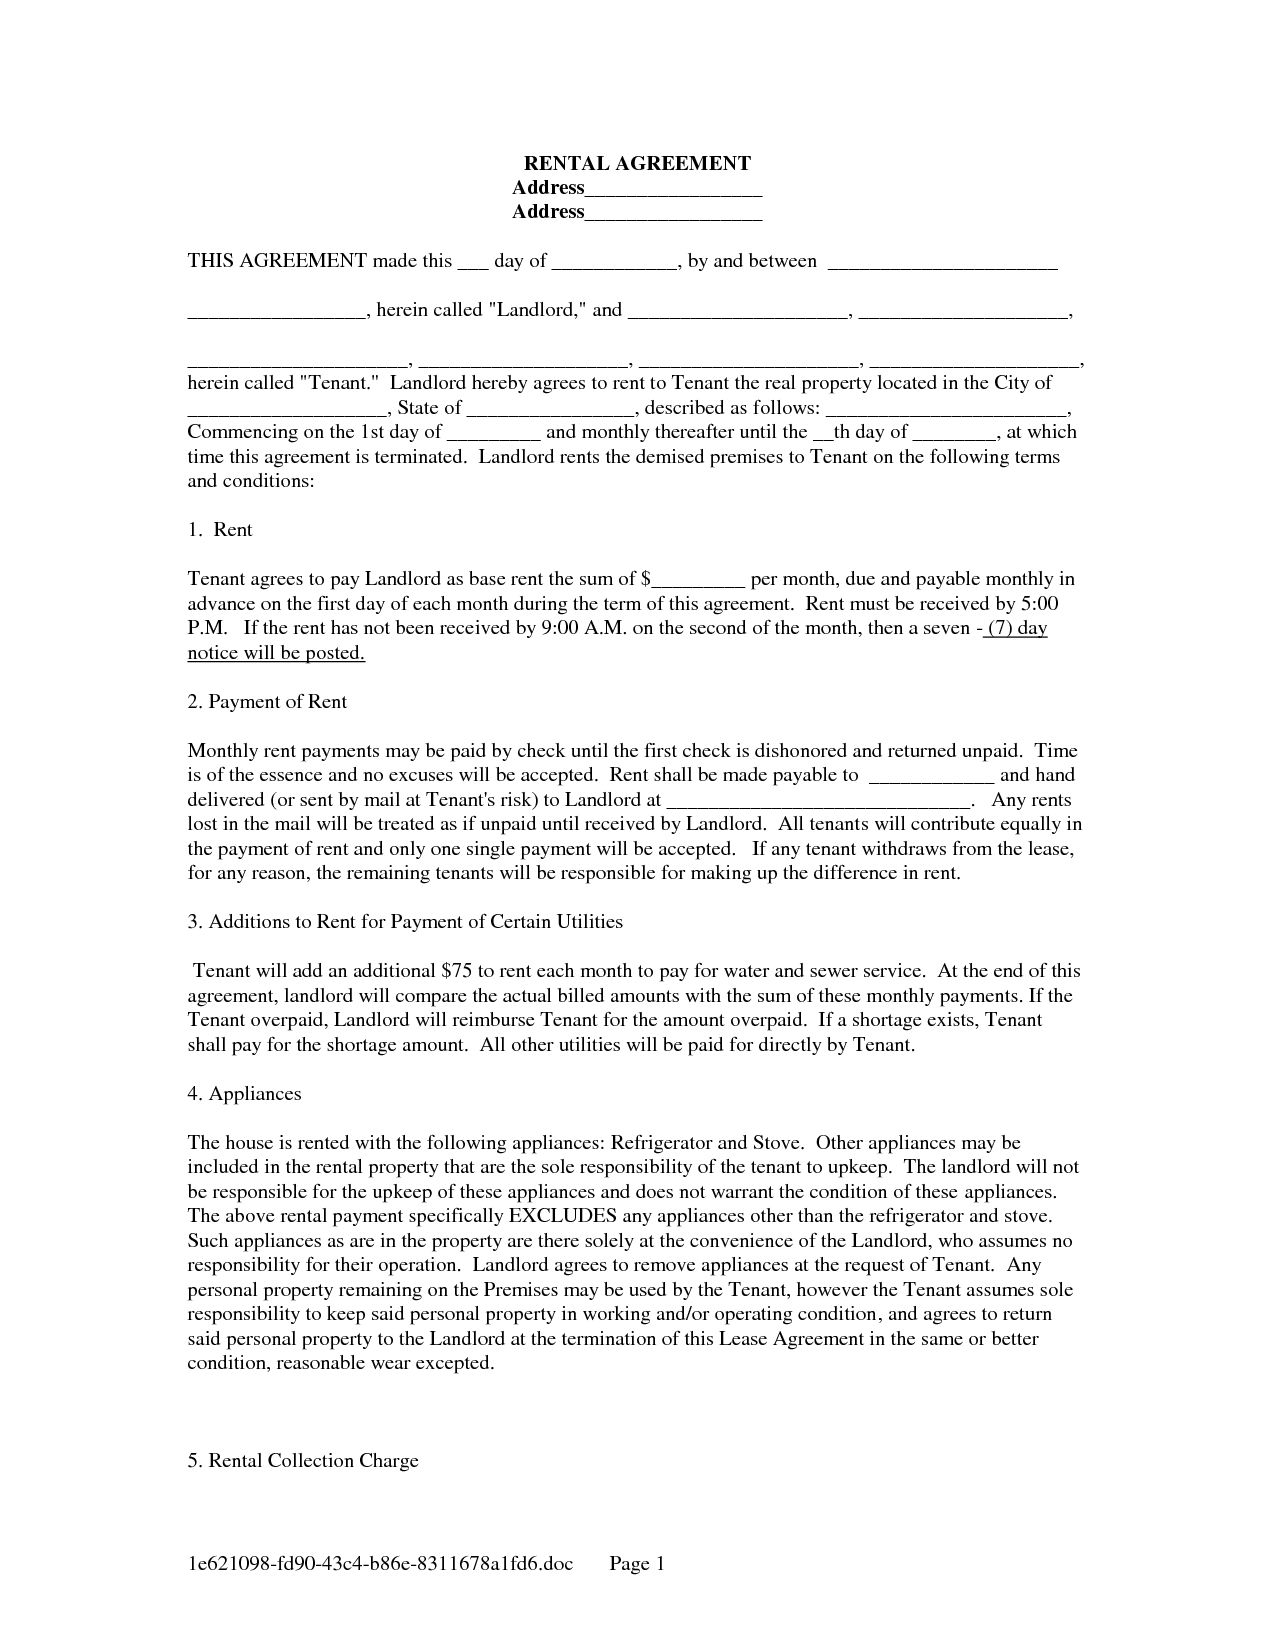 022 Template Ideas Rental Lease Agreement Word Radiovkm Free - Free Printable Rental Lease Agreement